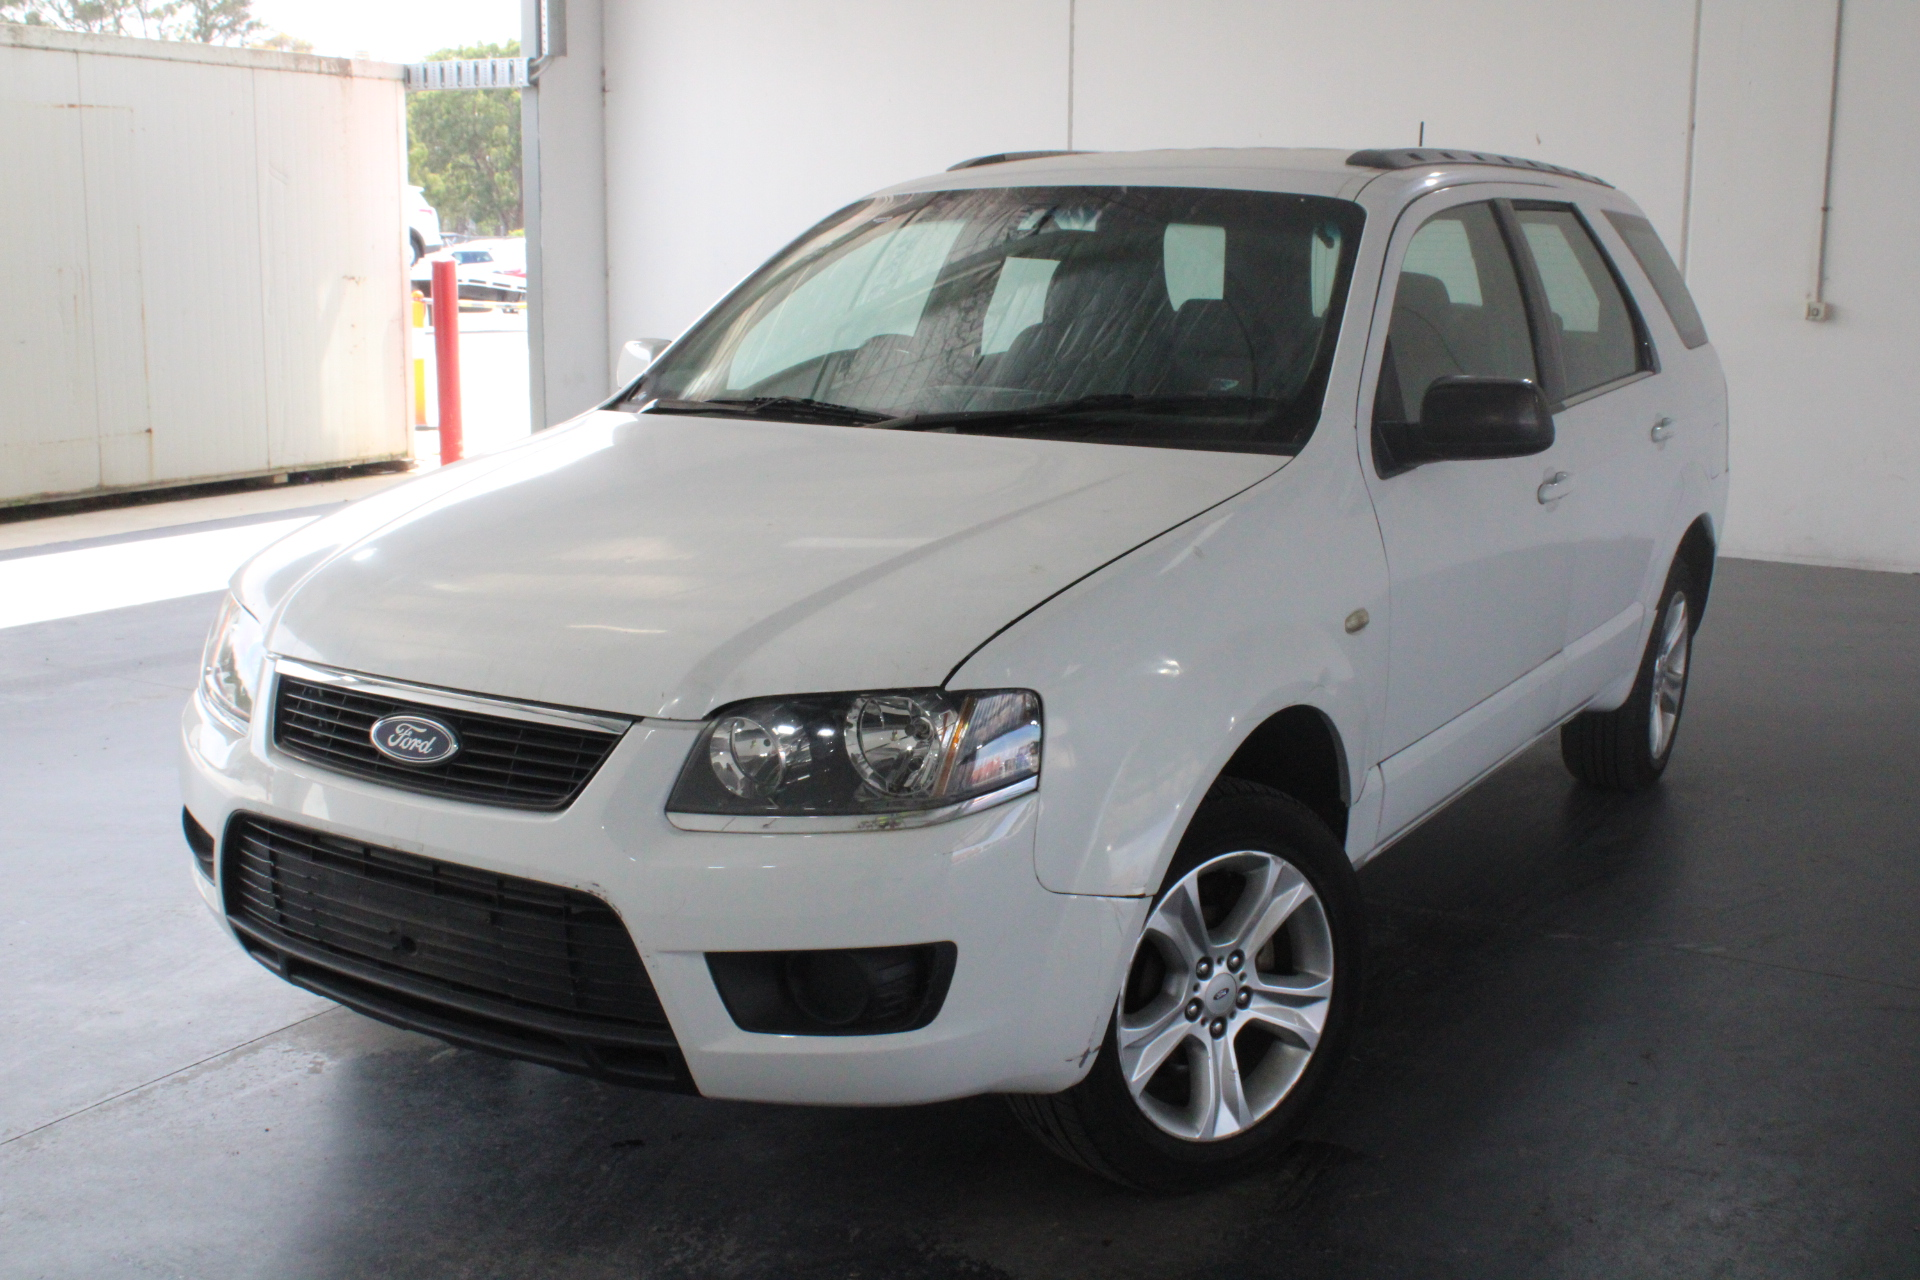 2009 Ford Territory TX (RWD) SY II Automatic Wagon(WOVR+INSPECTED)